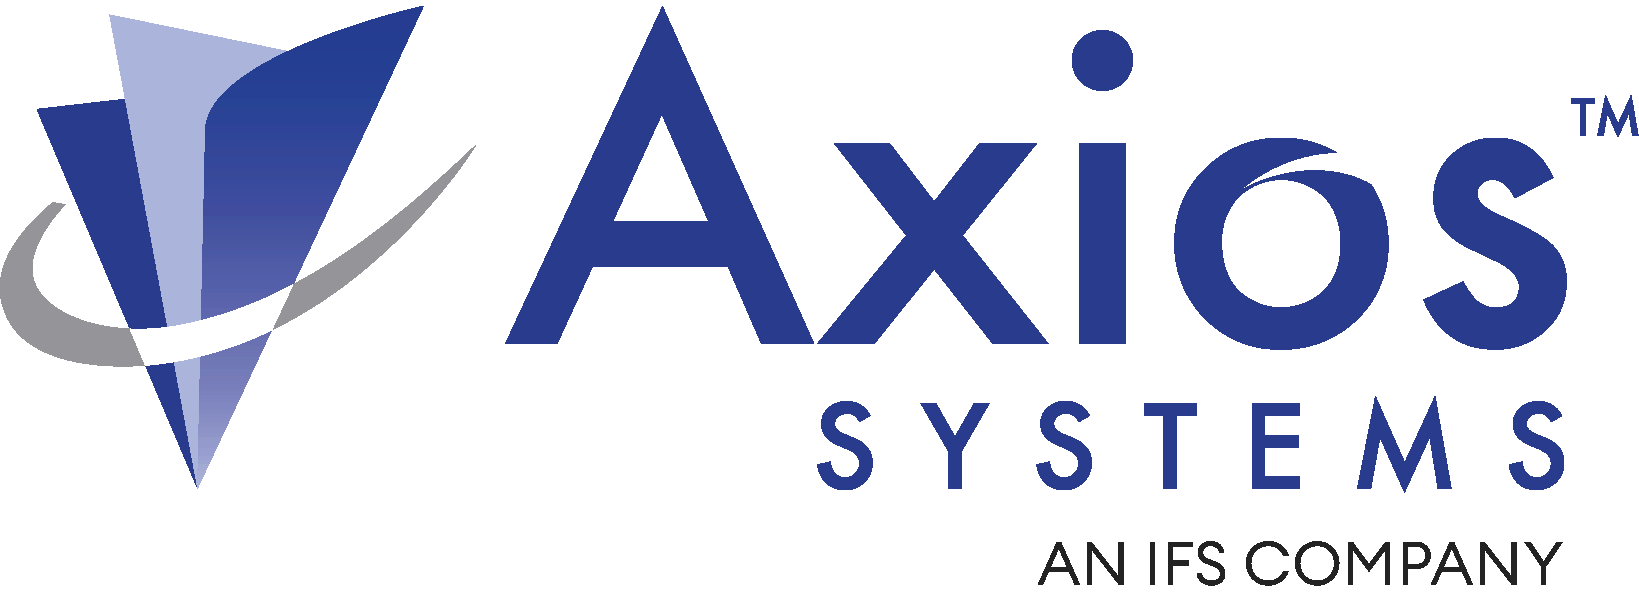 assyst integrates with CyberArk to securely access